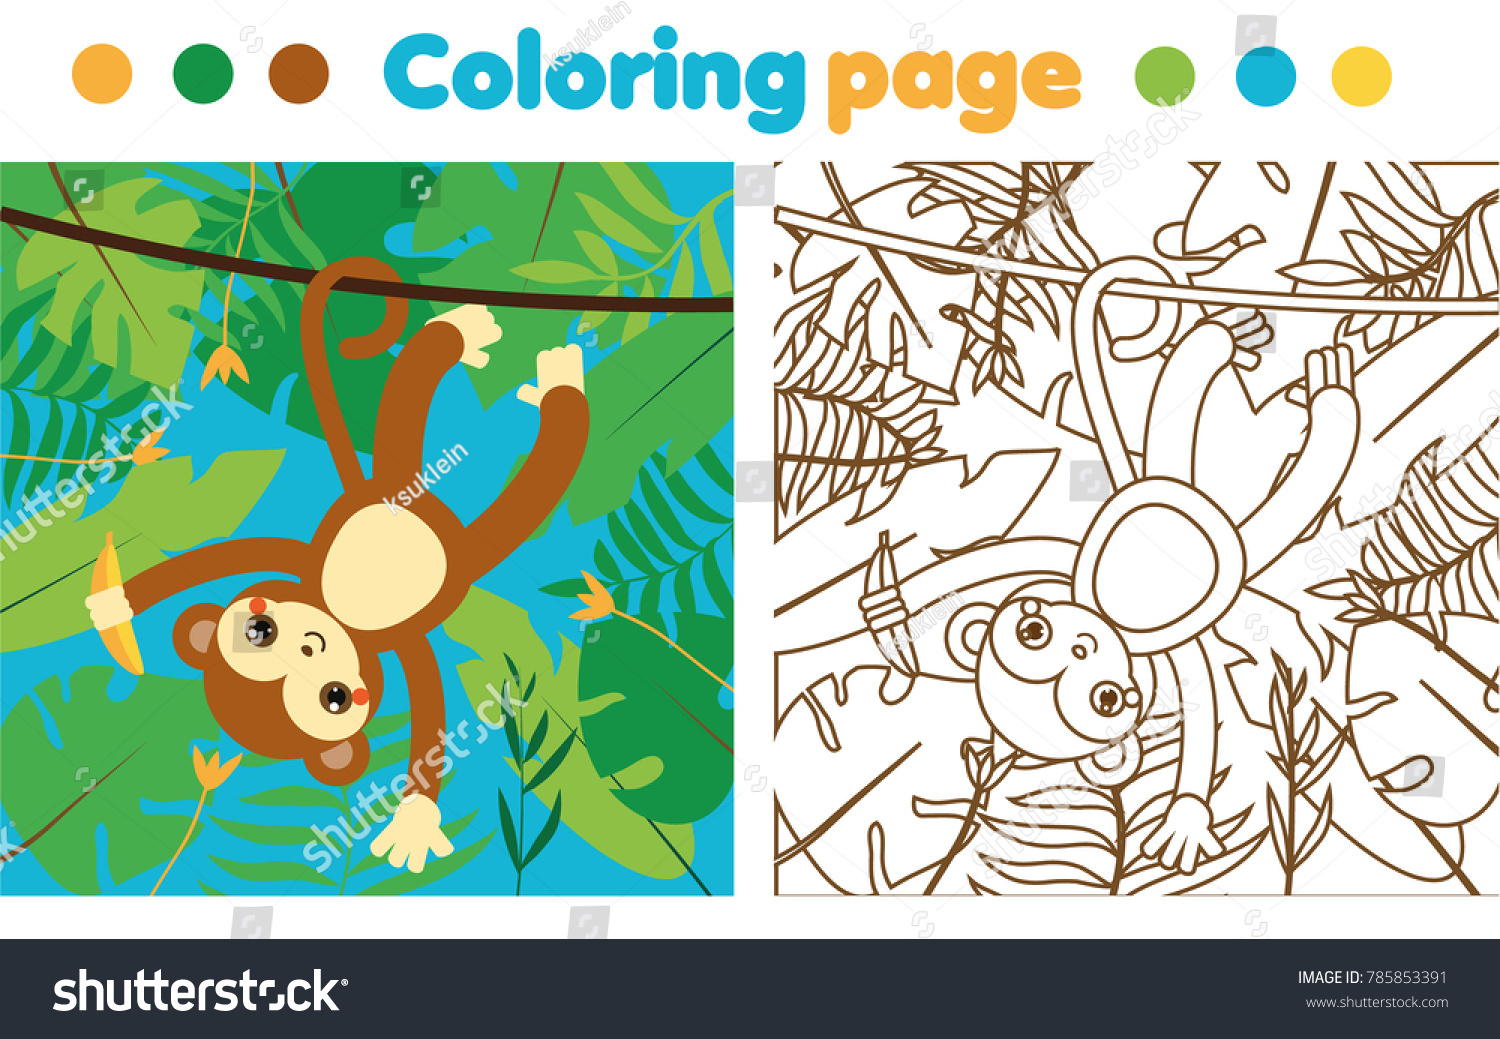 Coloring Page Children Monkey Jungle Drawing Stock Illustration ...